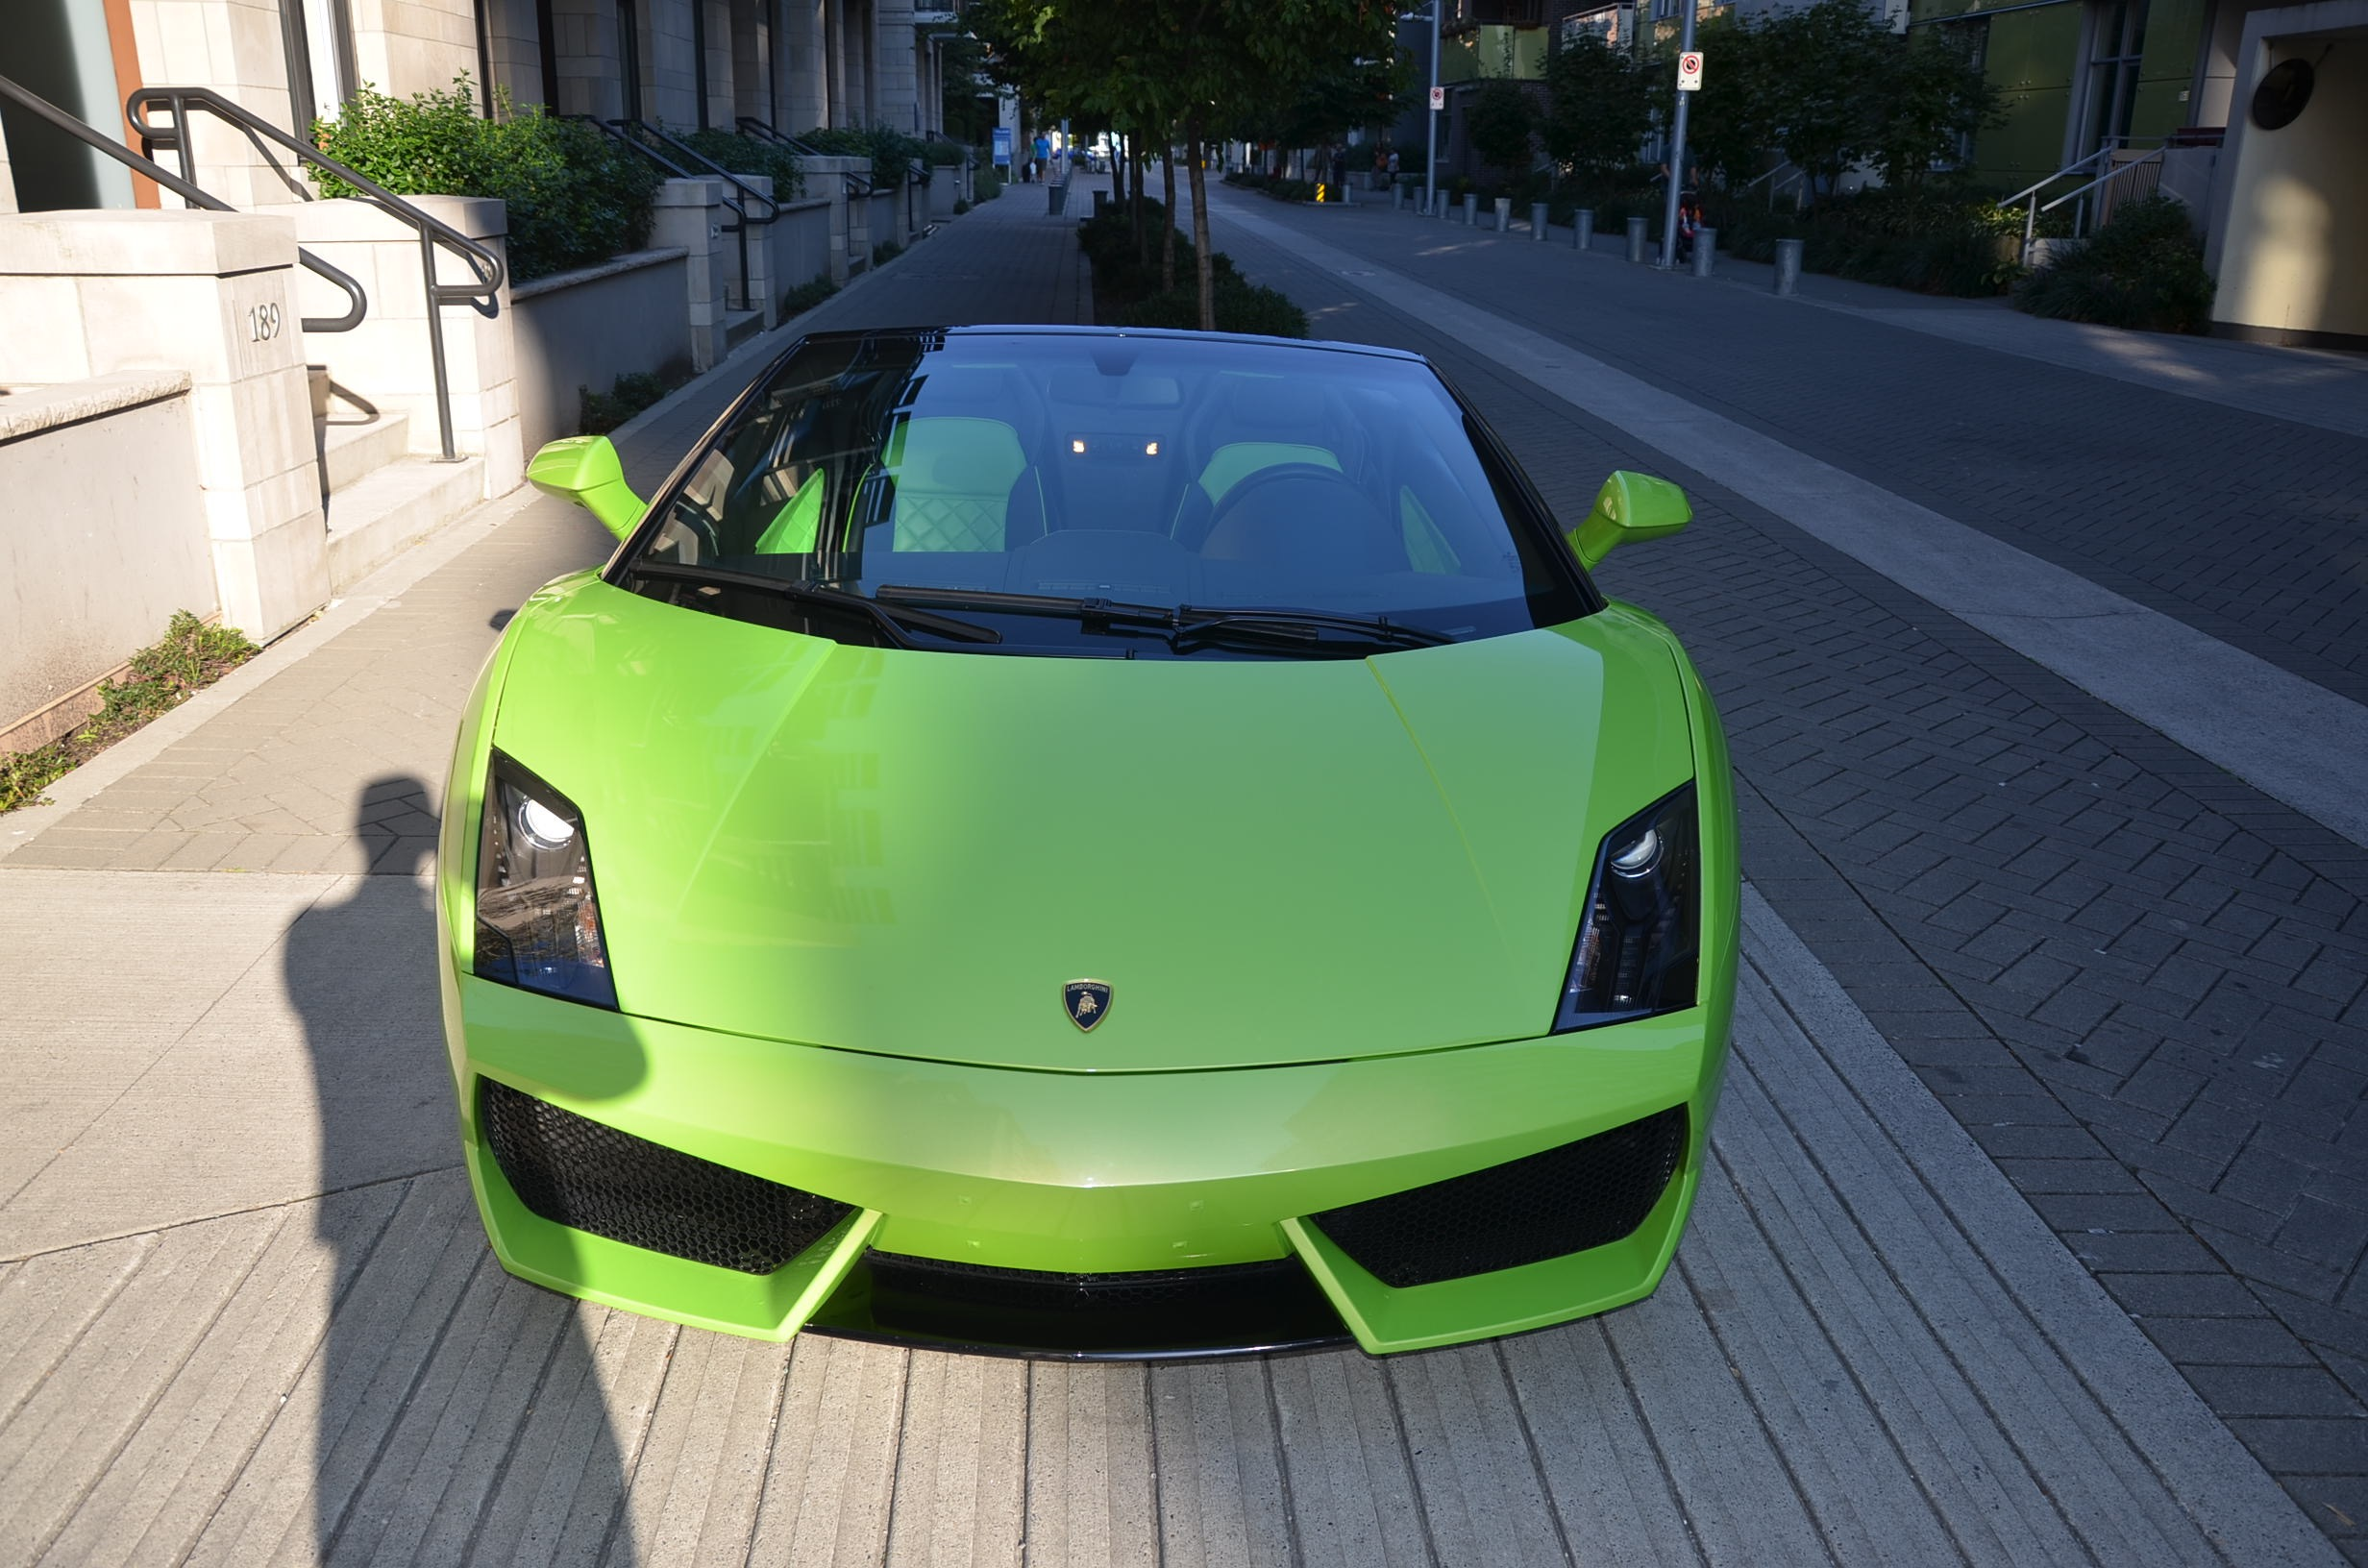 daily of in one guide cars the favorite licensed been price list from lamborghini italy sports street powerful have to world my most super they belong img always